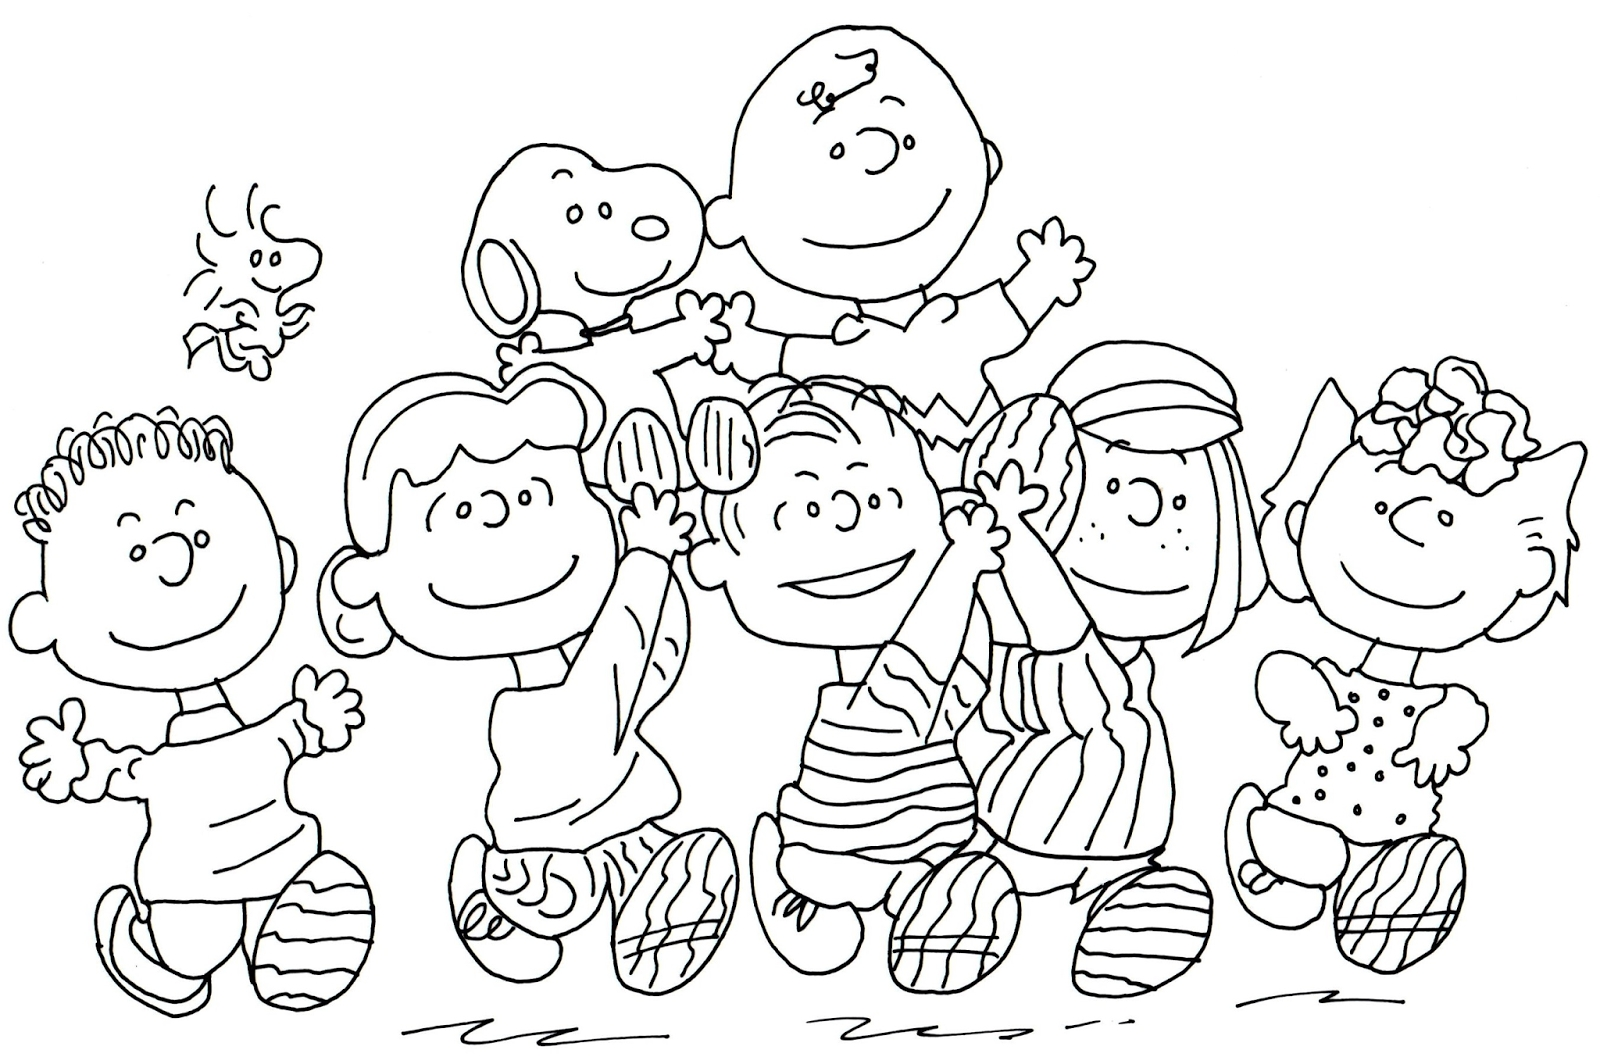 peanuts coloring pages - free printable coloring pages for whole